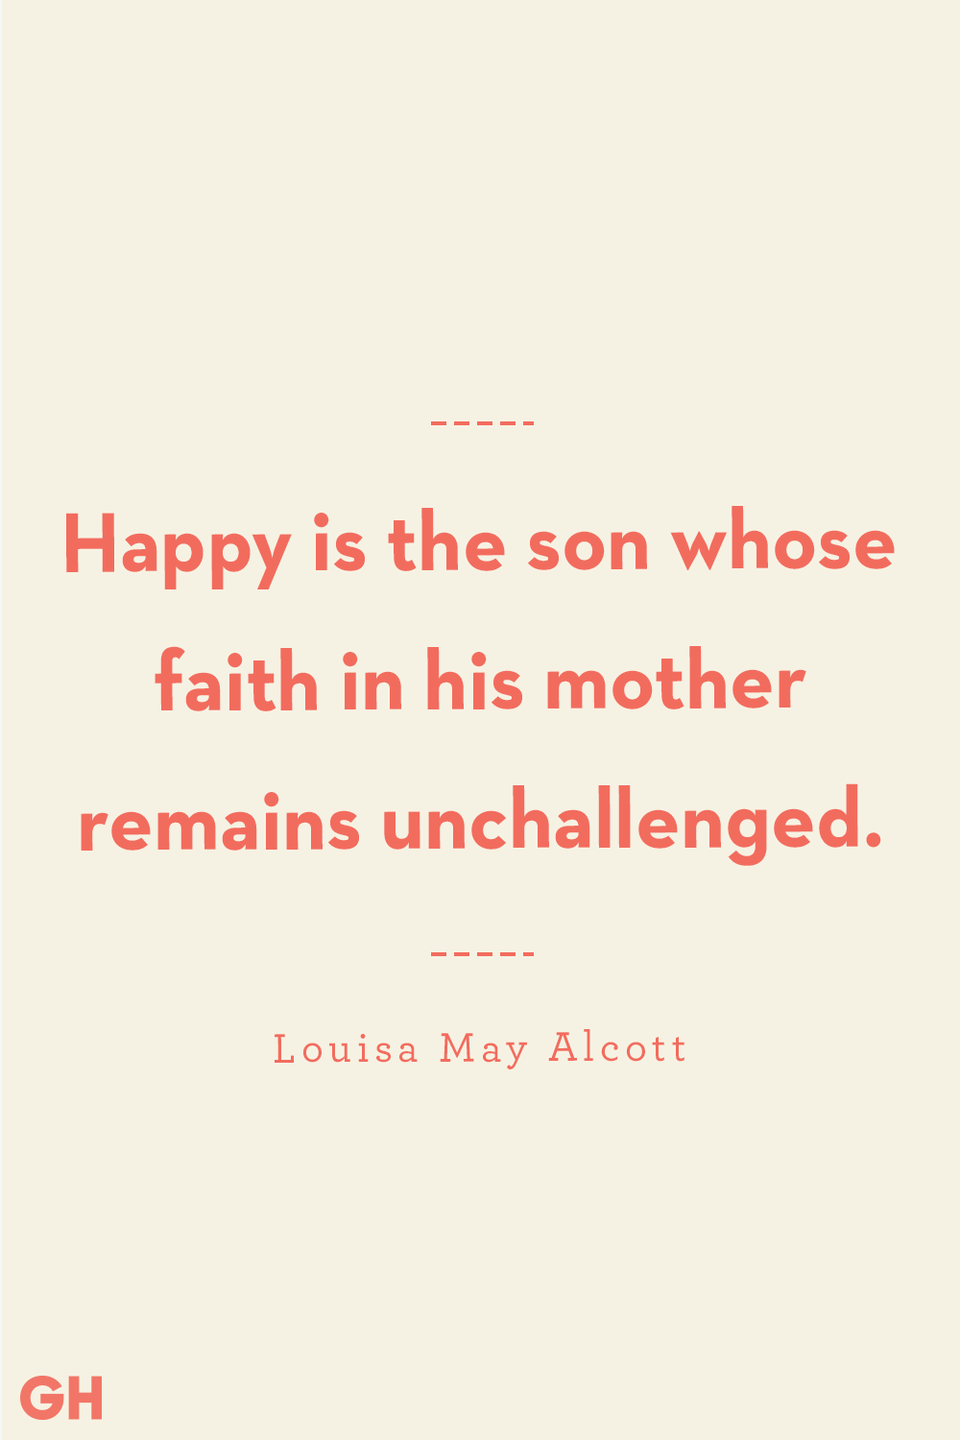 """<p>Happy is the son whose faith in his mother remains unchallenged.</p><p><strong>RELATED:</strong> <a href=""""https://www.goodhousekeeping.com/holidays/mothers-day/g20122850/single-mom-quotes/"""" rel=""""nofollow noopener"""" target=""""_blank"""" data-ylk=""""slk:Single Mom Quotes That Capture the Experience Perfectly"""" class=""""link rapid-noclick-resp"""">Single Mom Quotes That Capture the Experience Perfectly</a></p>"""